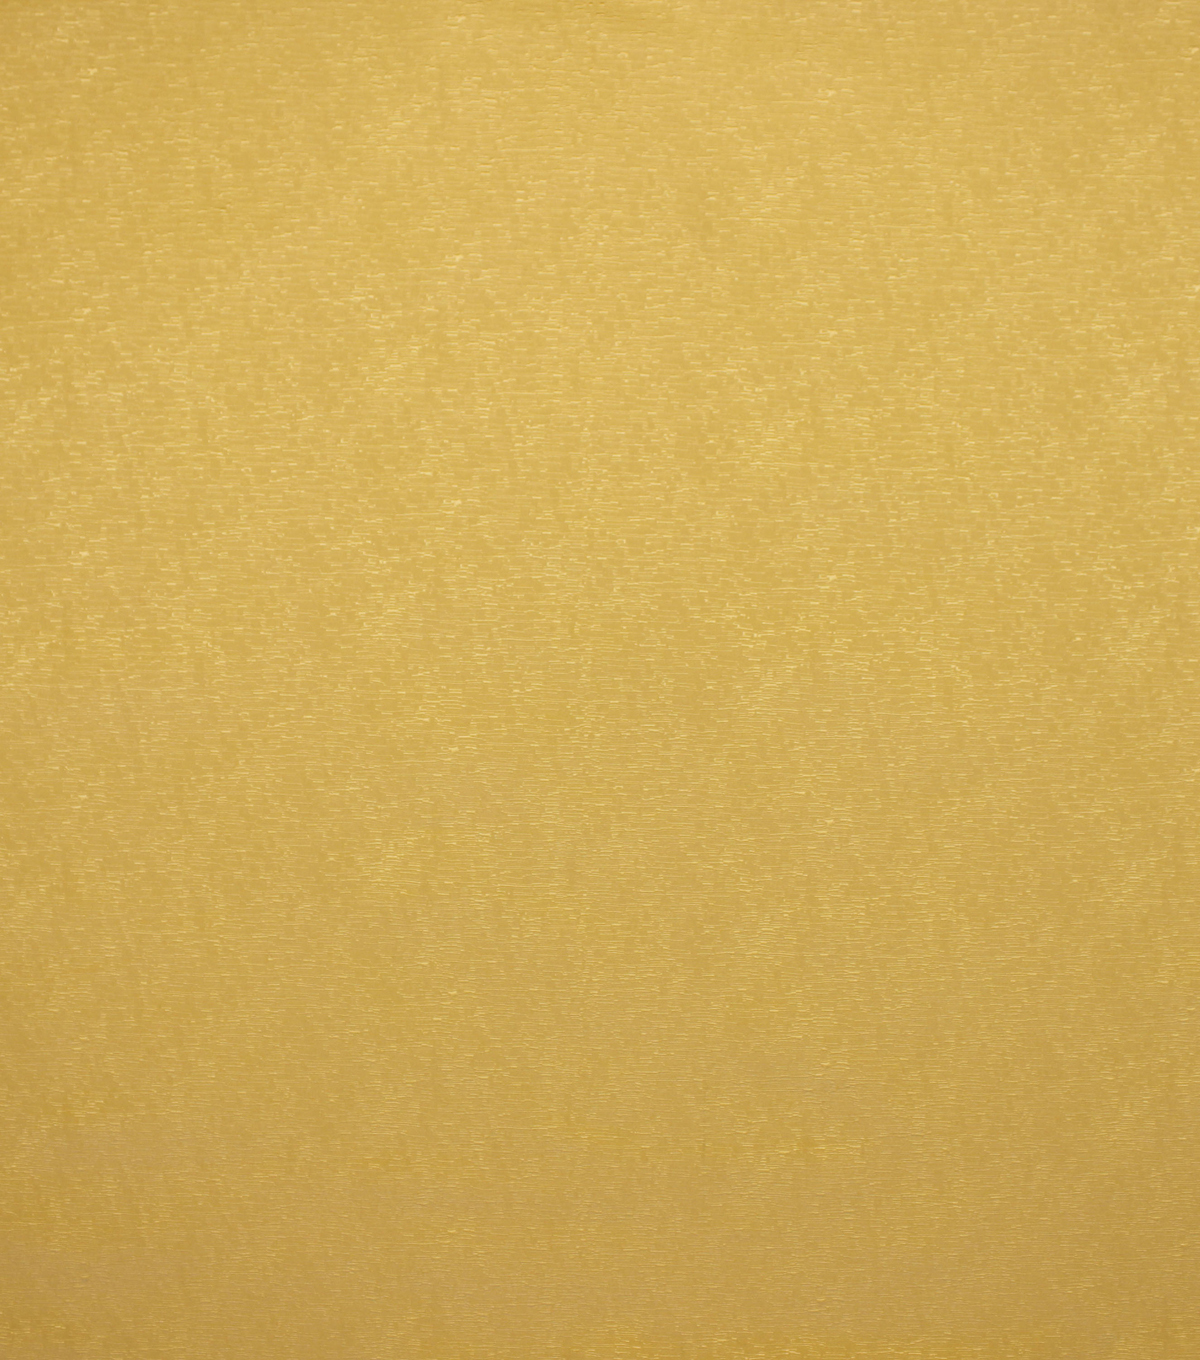 Home Decor 8\u0022x8\u0022 Fabric Swatch-Upholstery Fabric Barrow M6603-5137 Sunshine